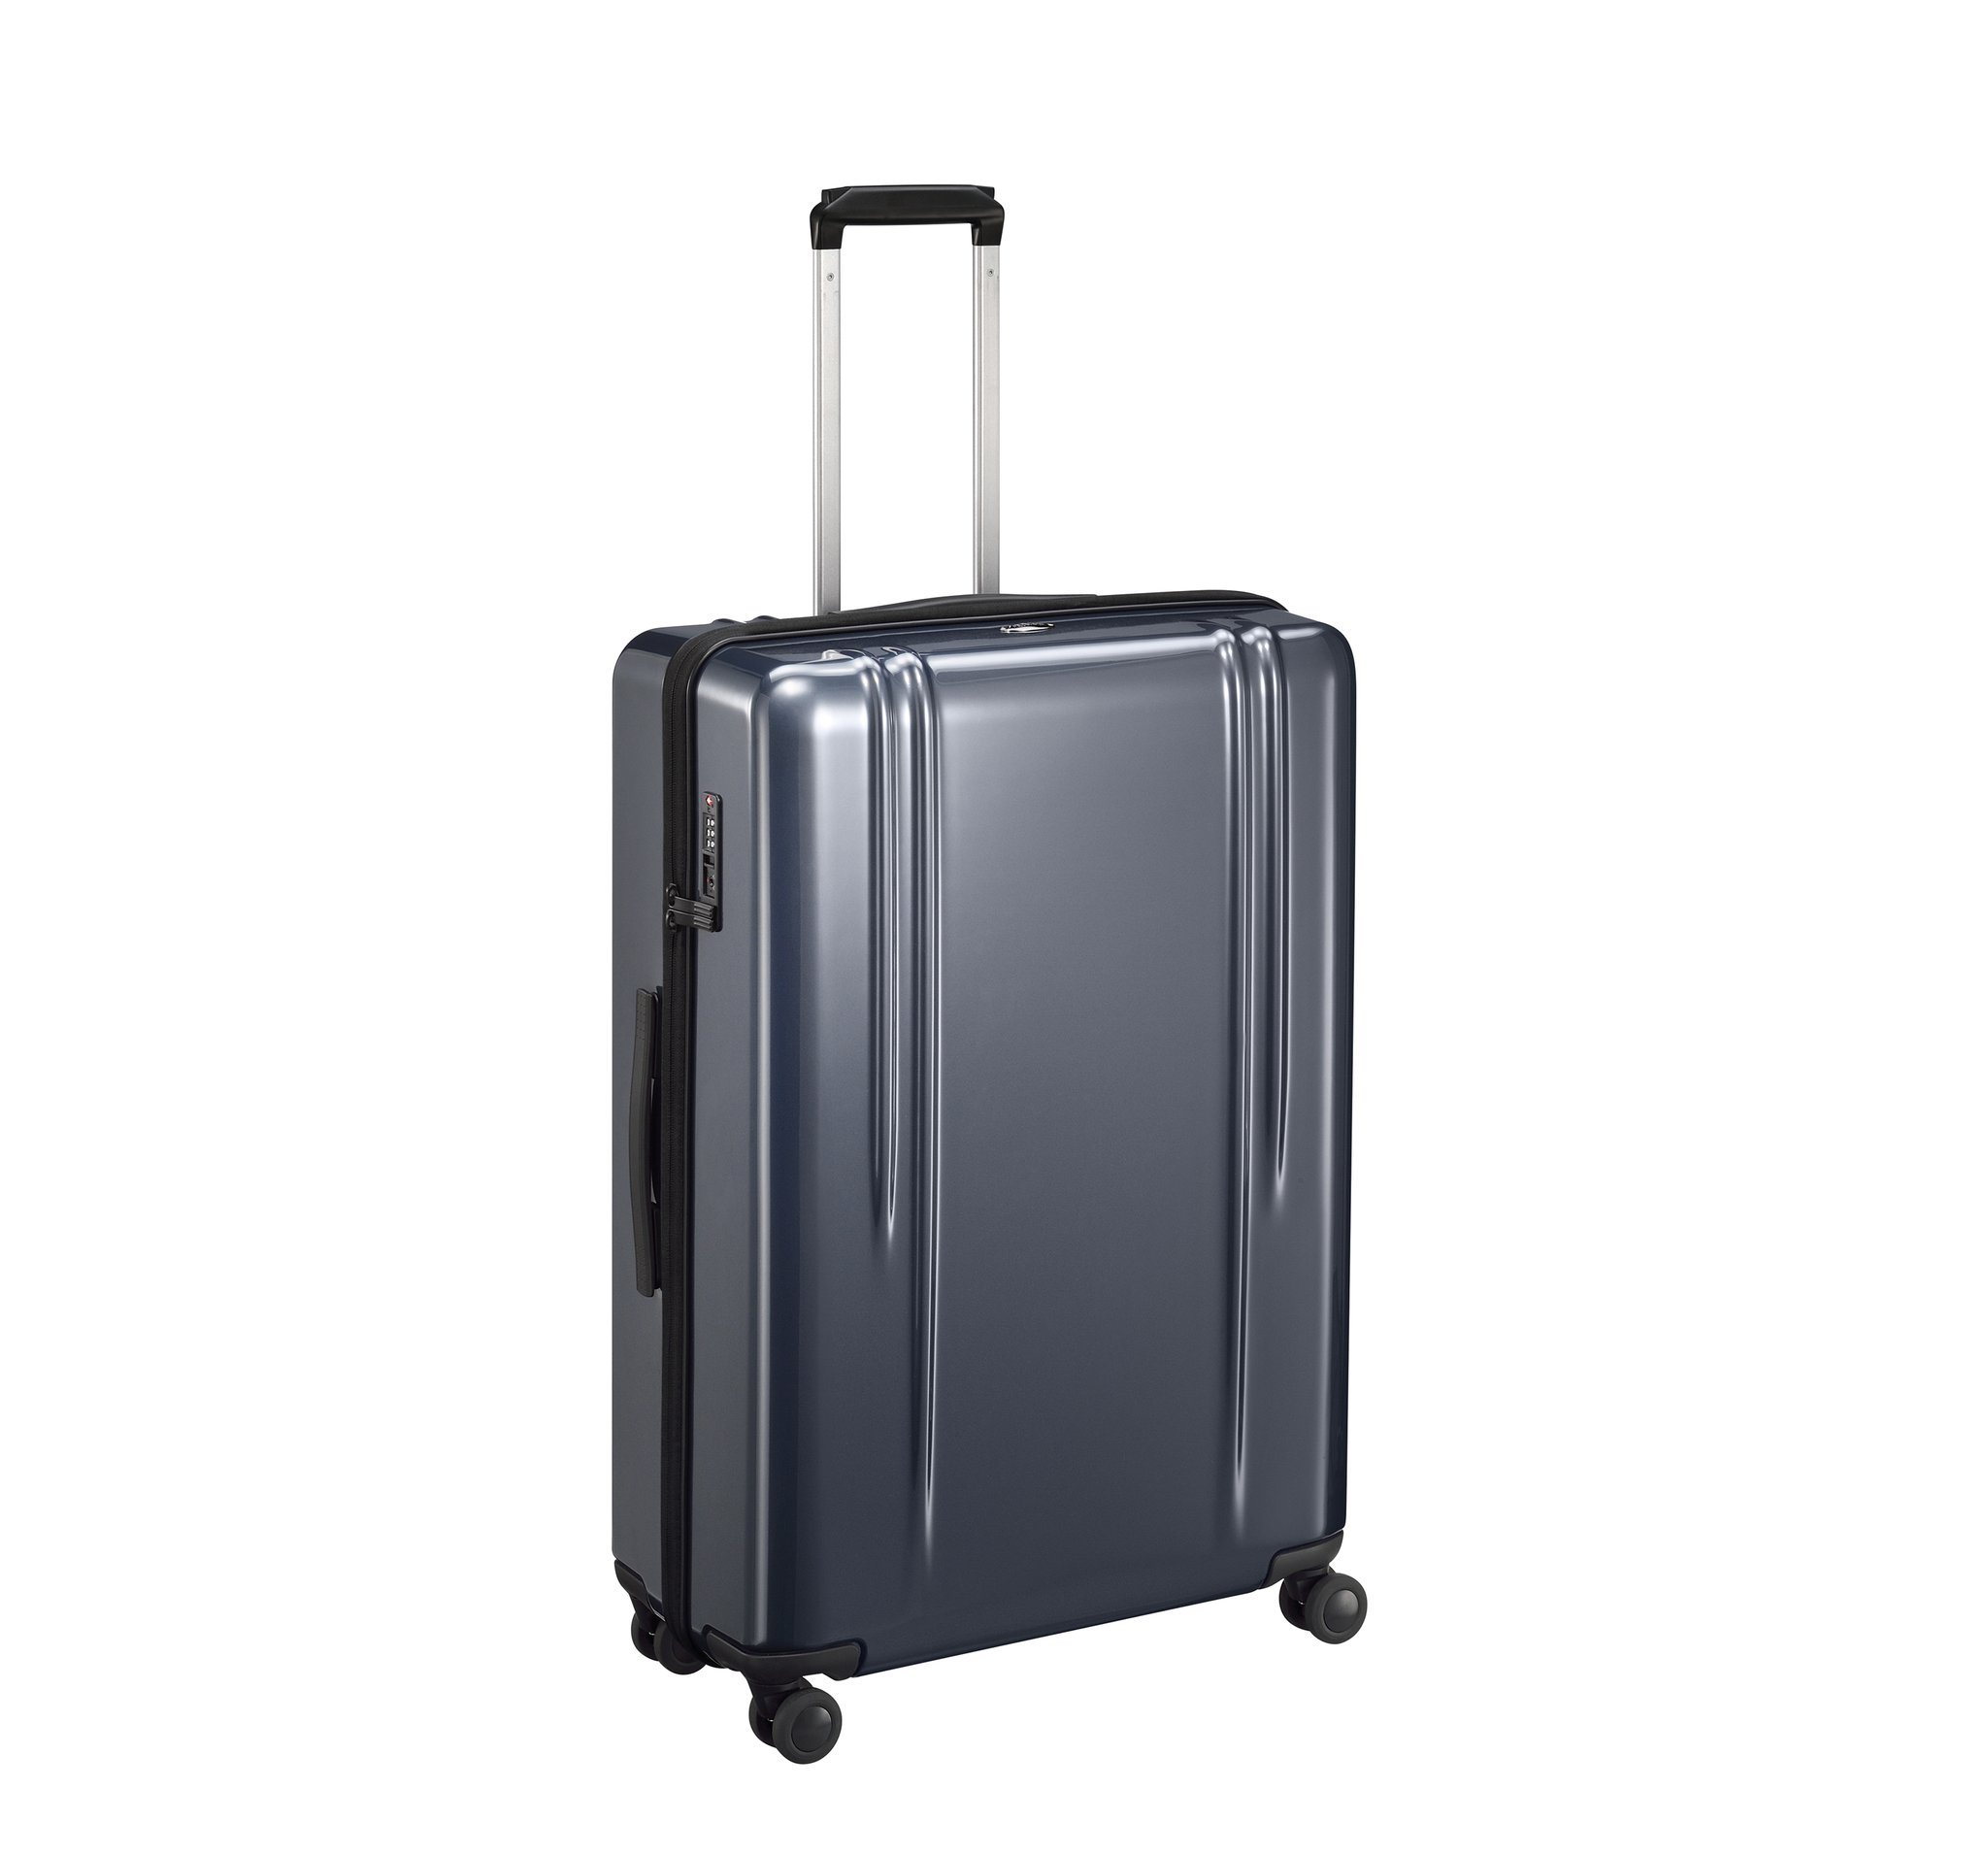 "ZRL - 28"" Lightweight Luggage by Zero Halliburton (Color: Gunmetal)"